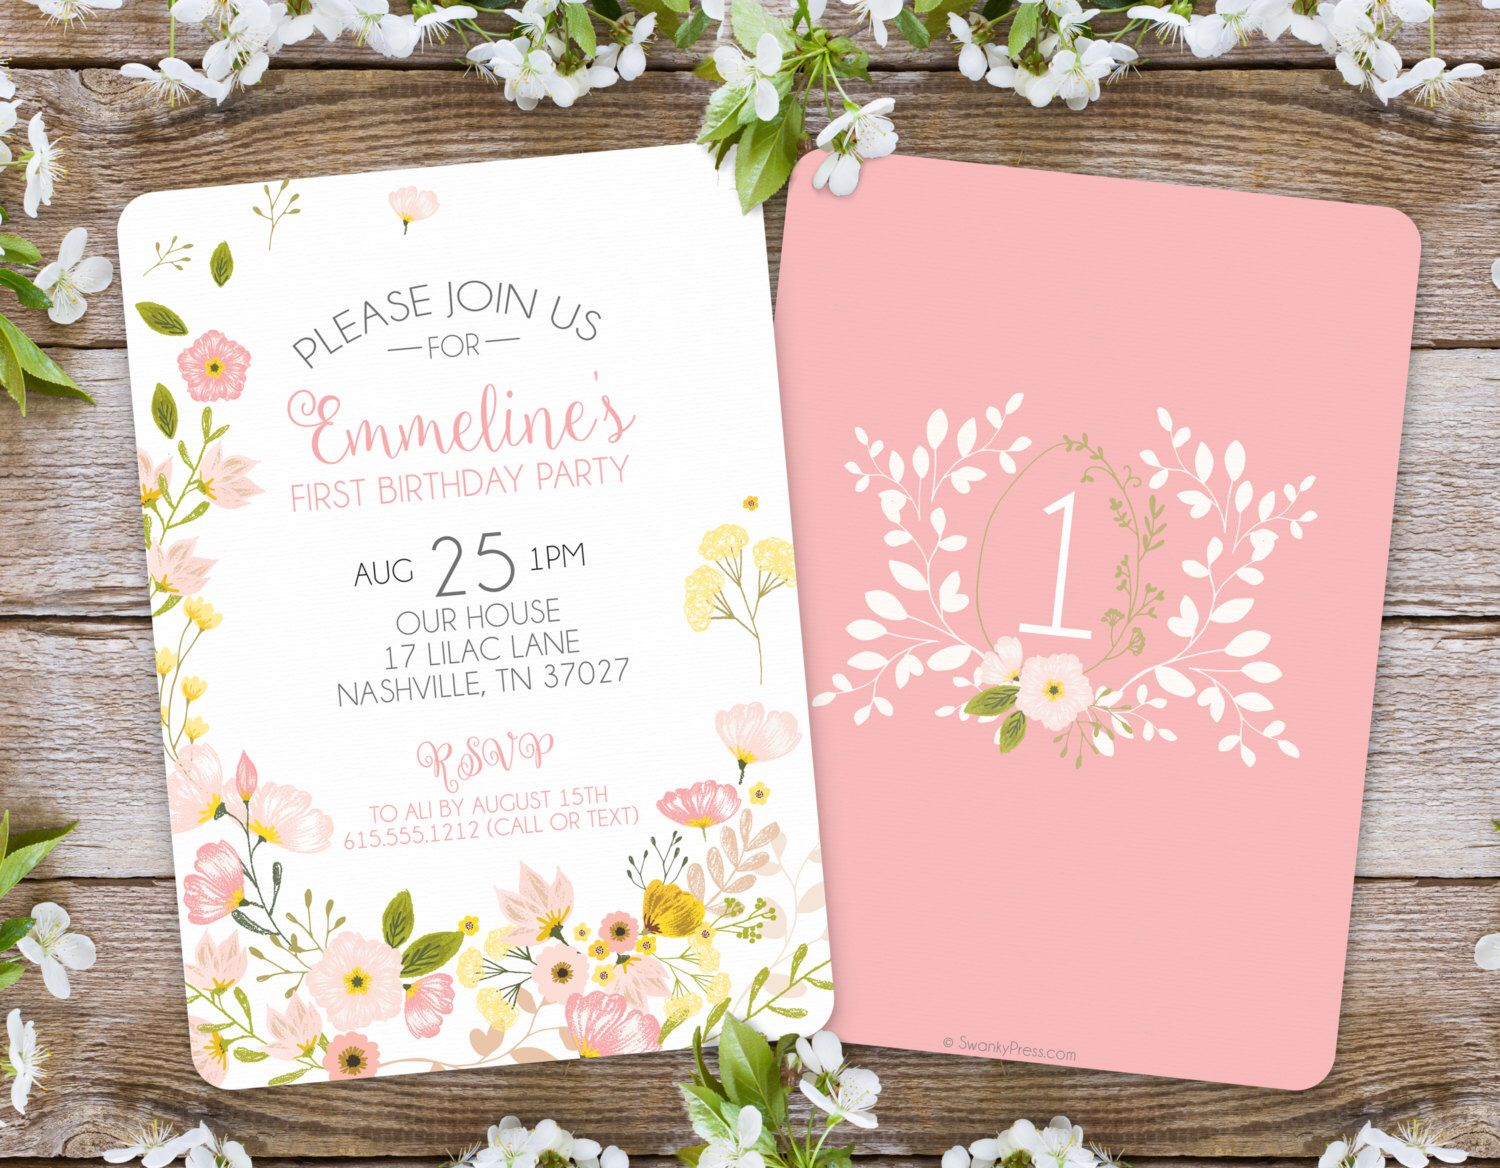 First Birthday Invitation Girl Floral Garden Party 1st By SwankyPress